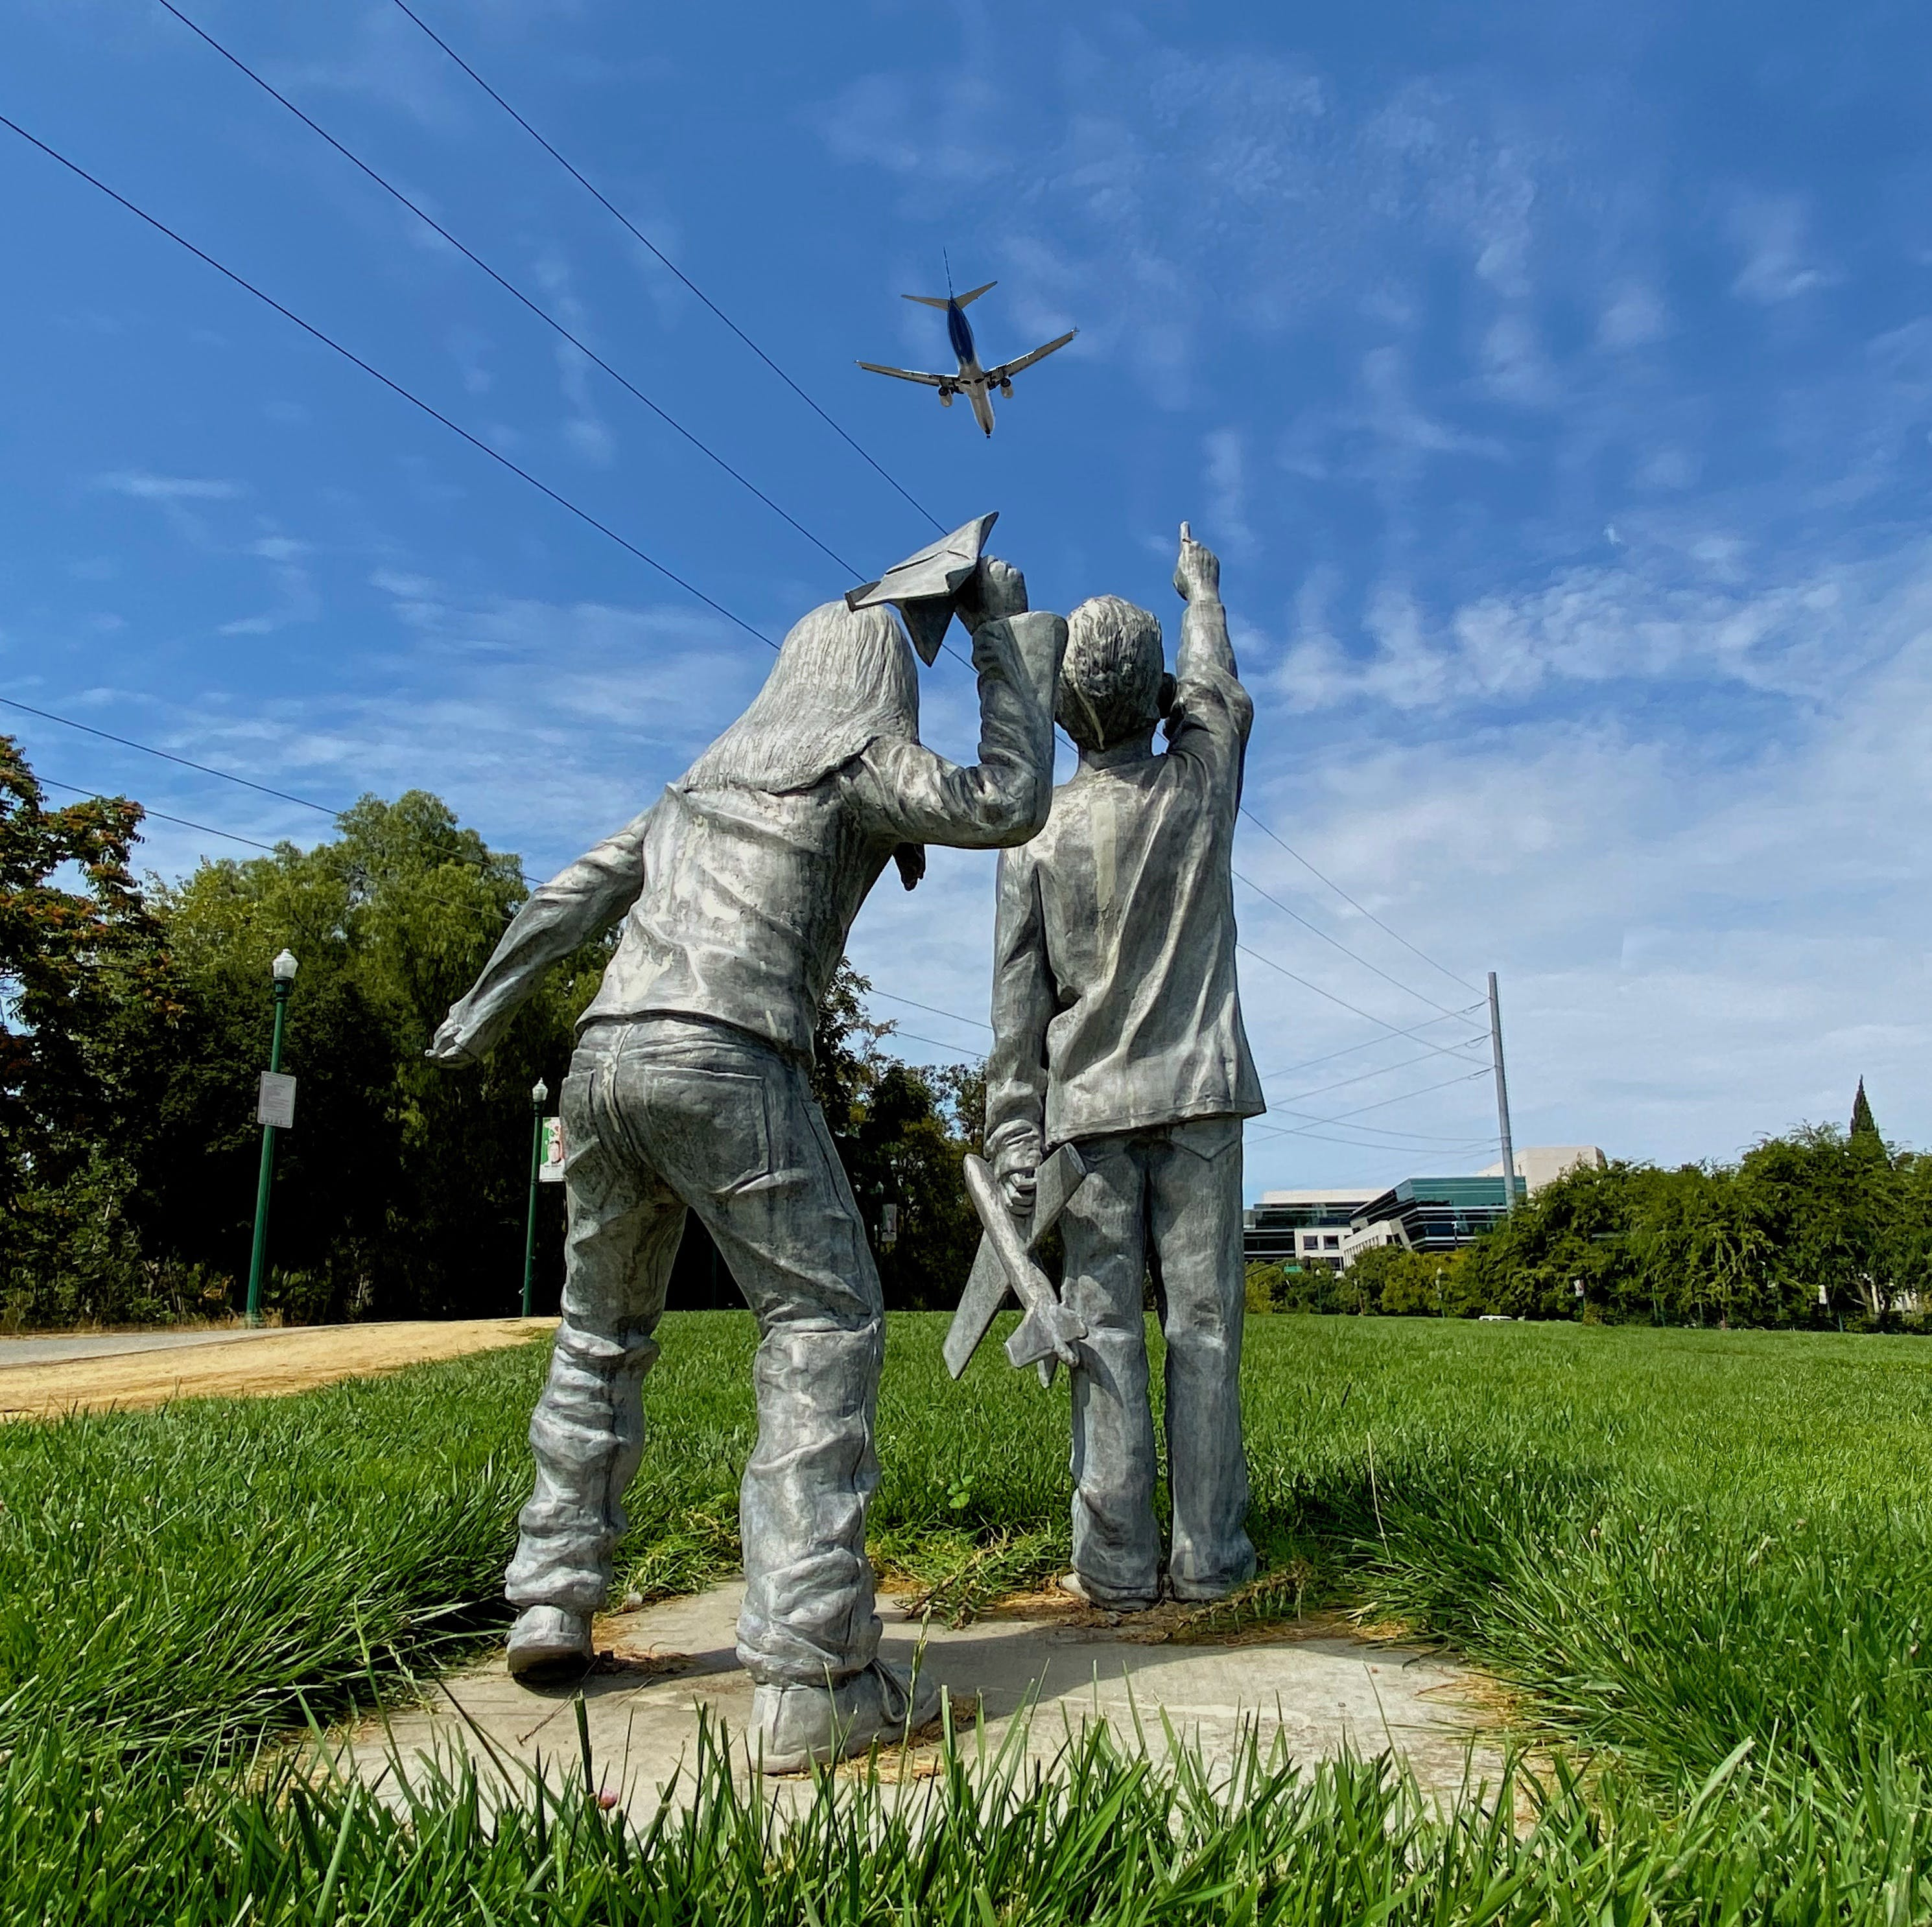 Sculpture of two kids pointing at the sky near the San Jose Airport with planes flying overhead